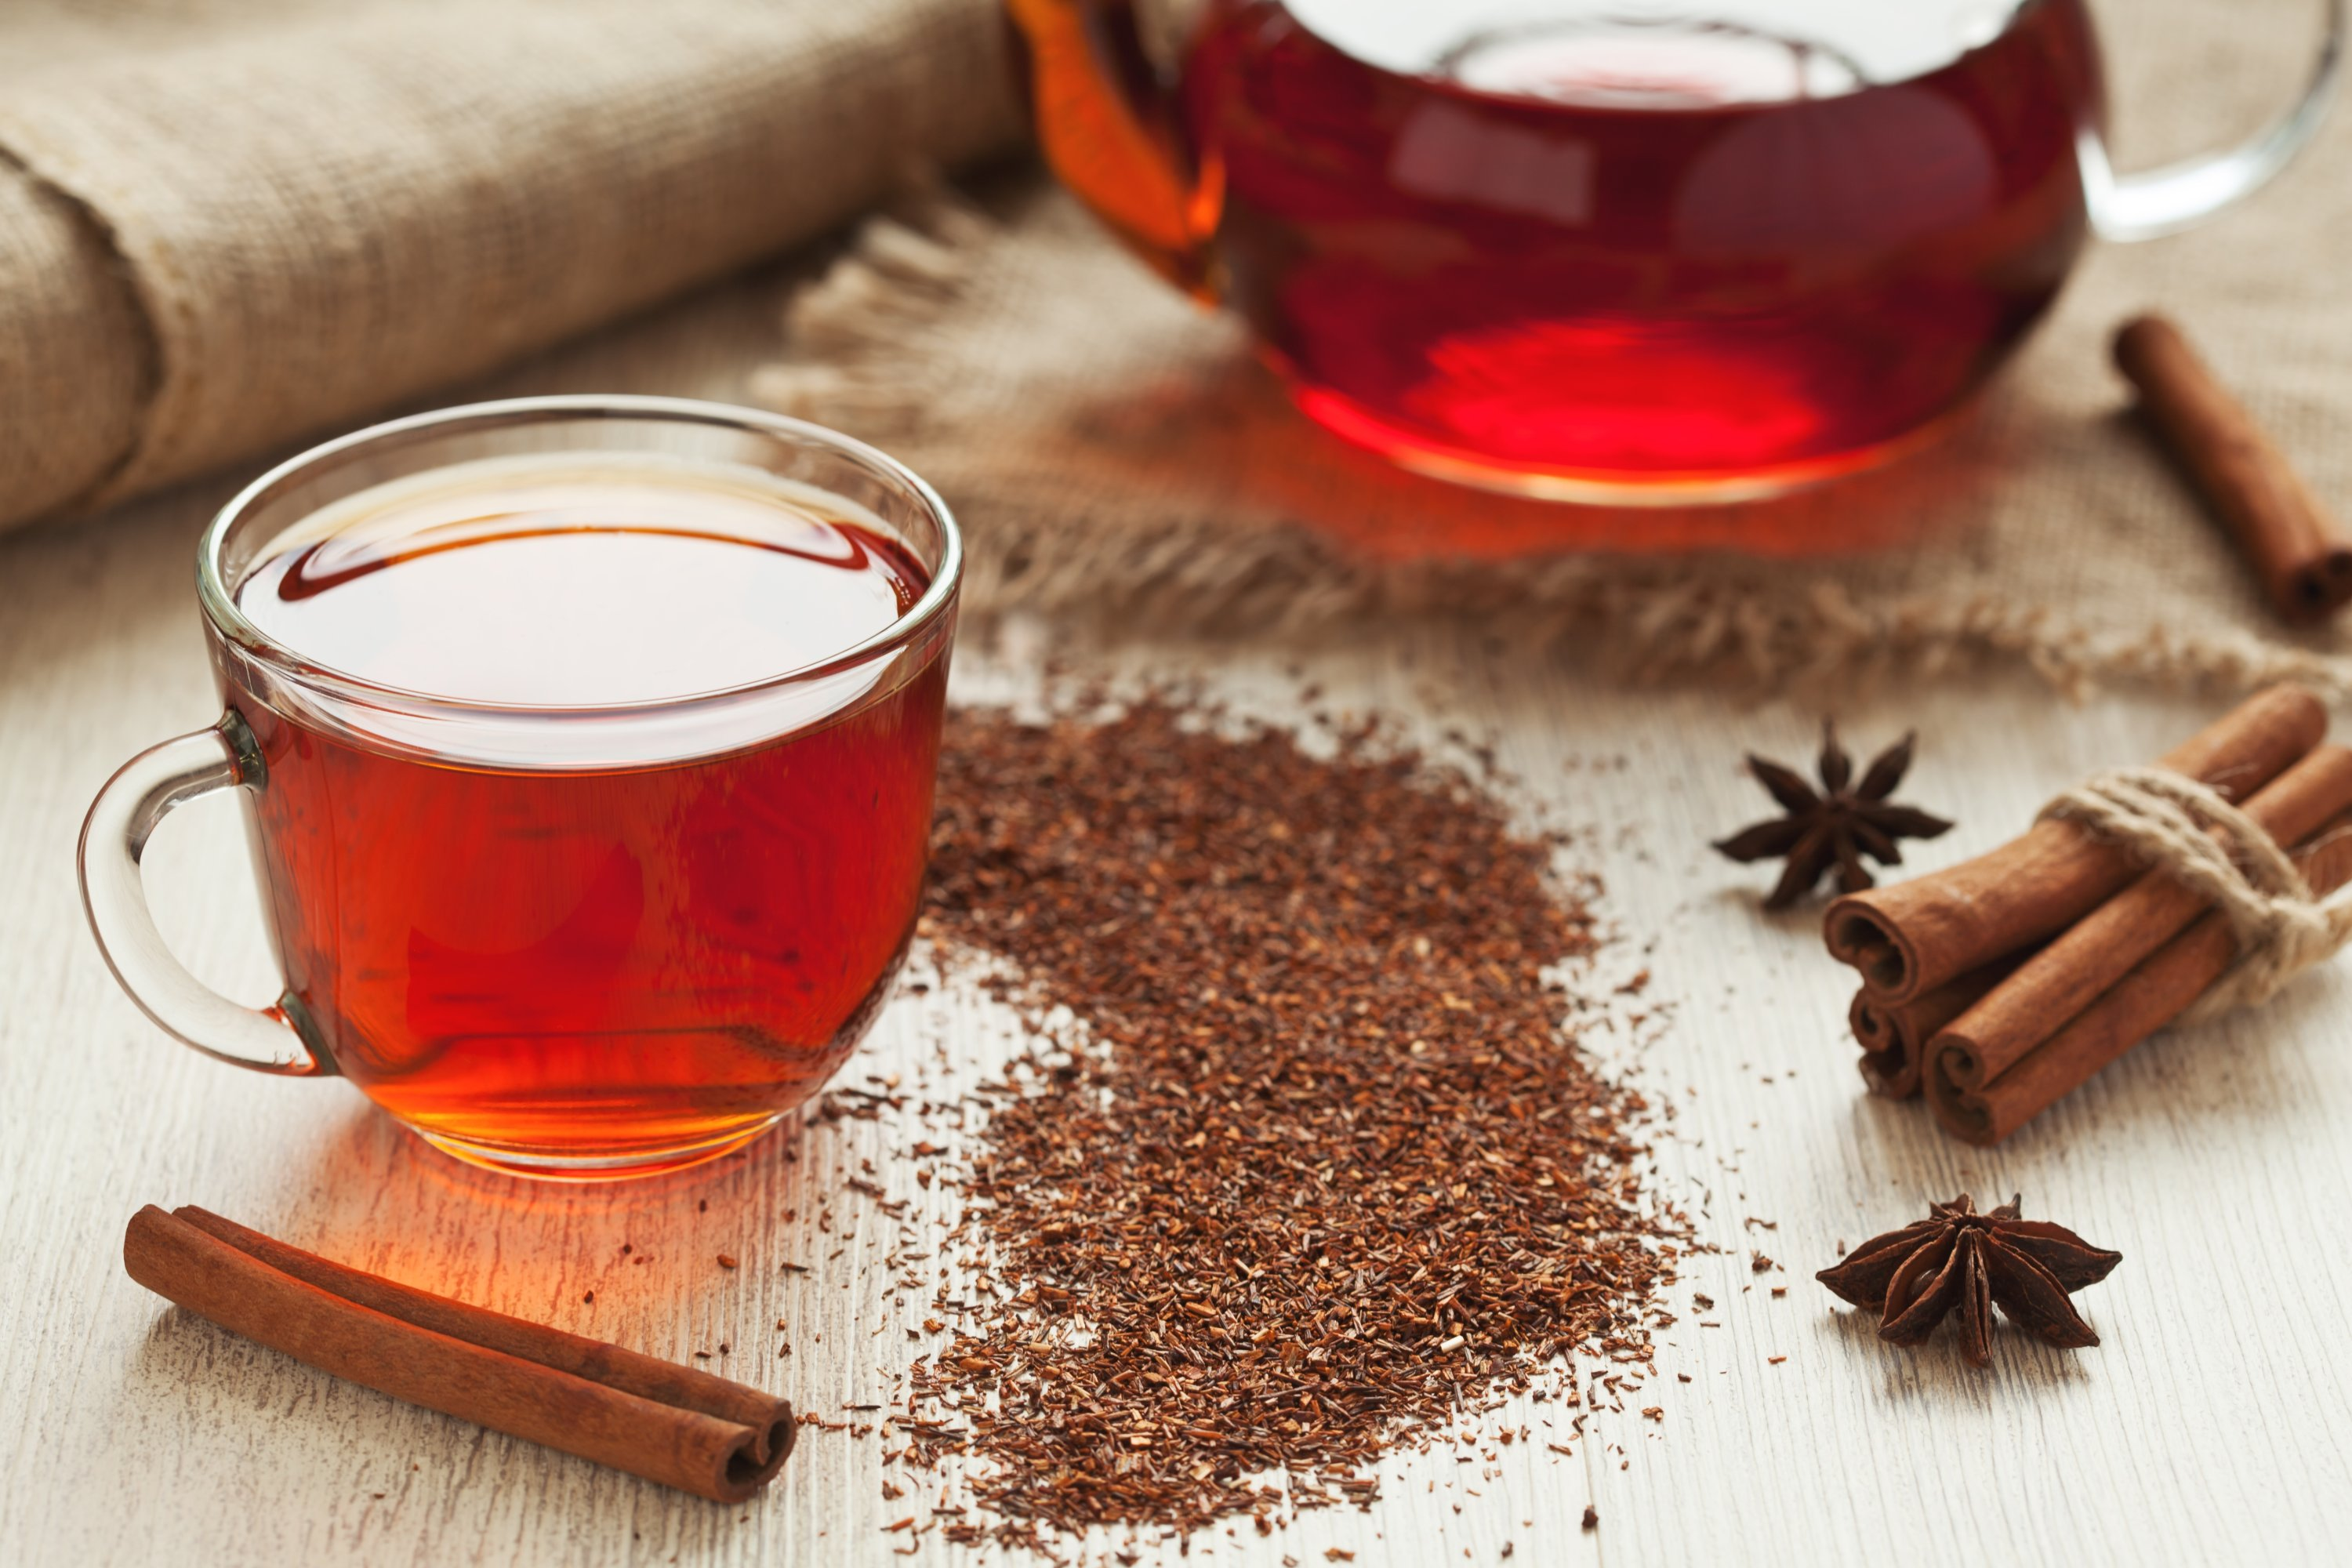 Also known as red tea or red bush tea, rooibos tea is native to South Africa. (Shutterstock Photo)